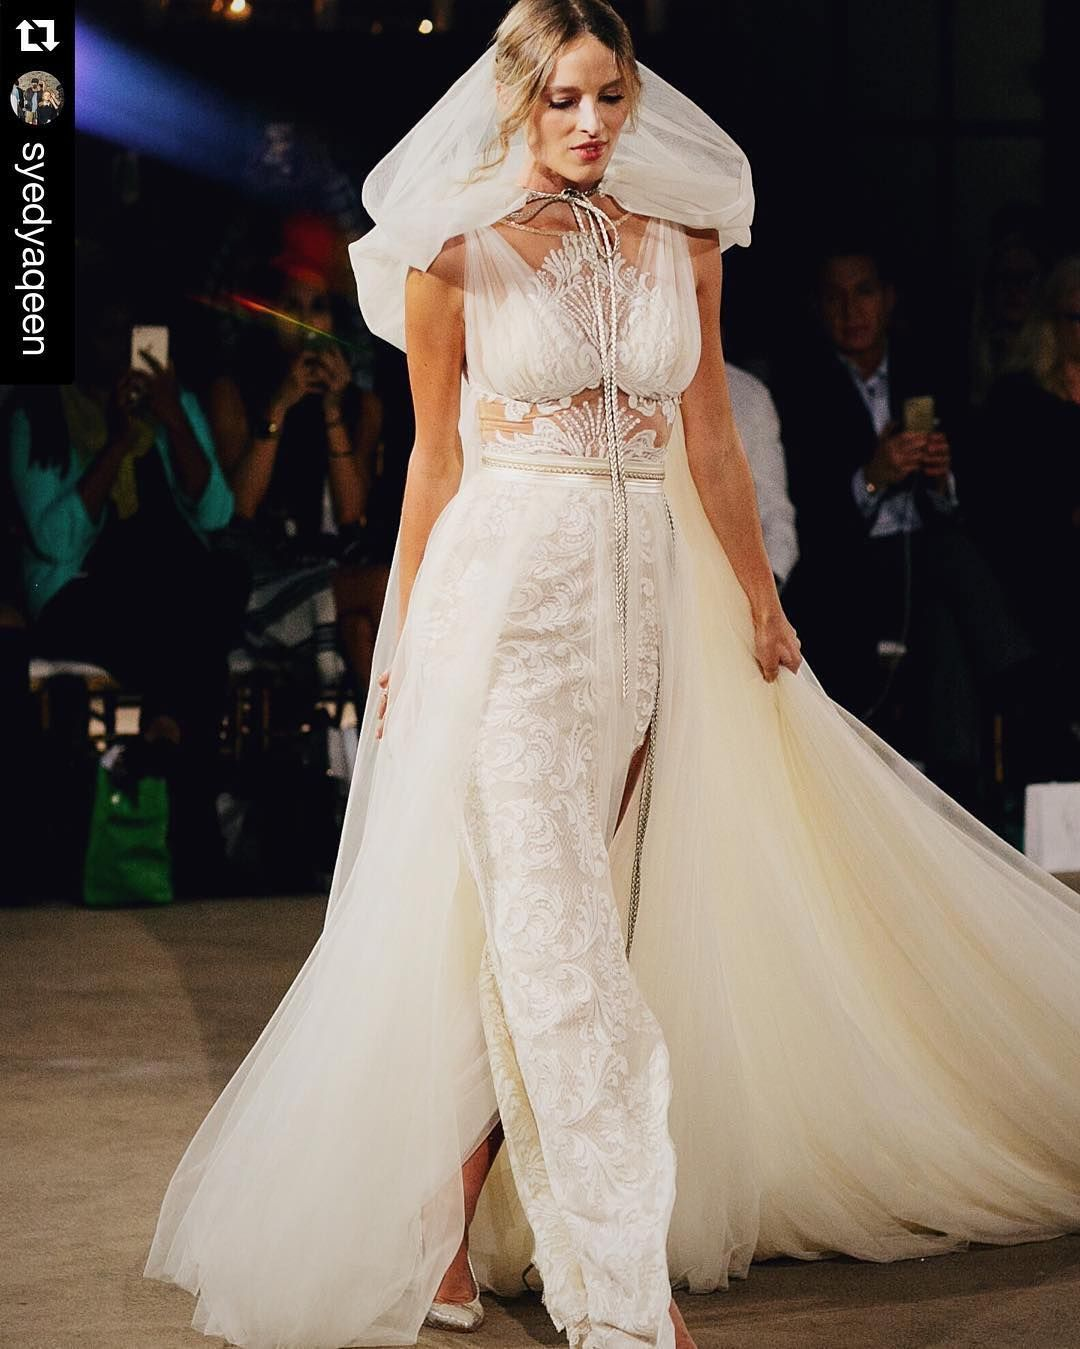 @galialahav at #NYBFW in @nypl  photographer @syedyaqeen #headpiece @millelacouture  #galialahav #millelacouture #galialahavbridal #bridalweek #bridalmarket #nybridalweek #bridalfashion | #synybfw | #fashionweek #fashion #bridalfashion #bridalblogger #fashionblogger #vsco by nybfw